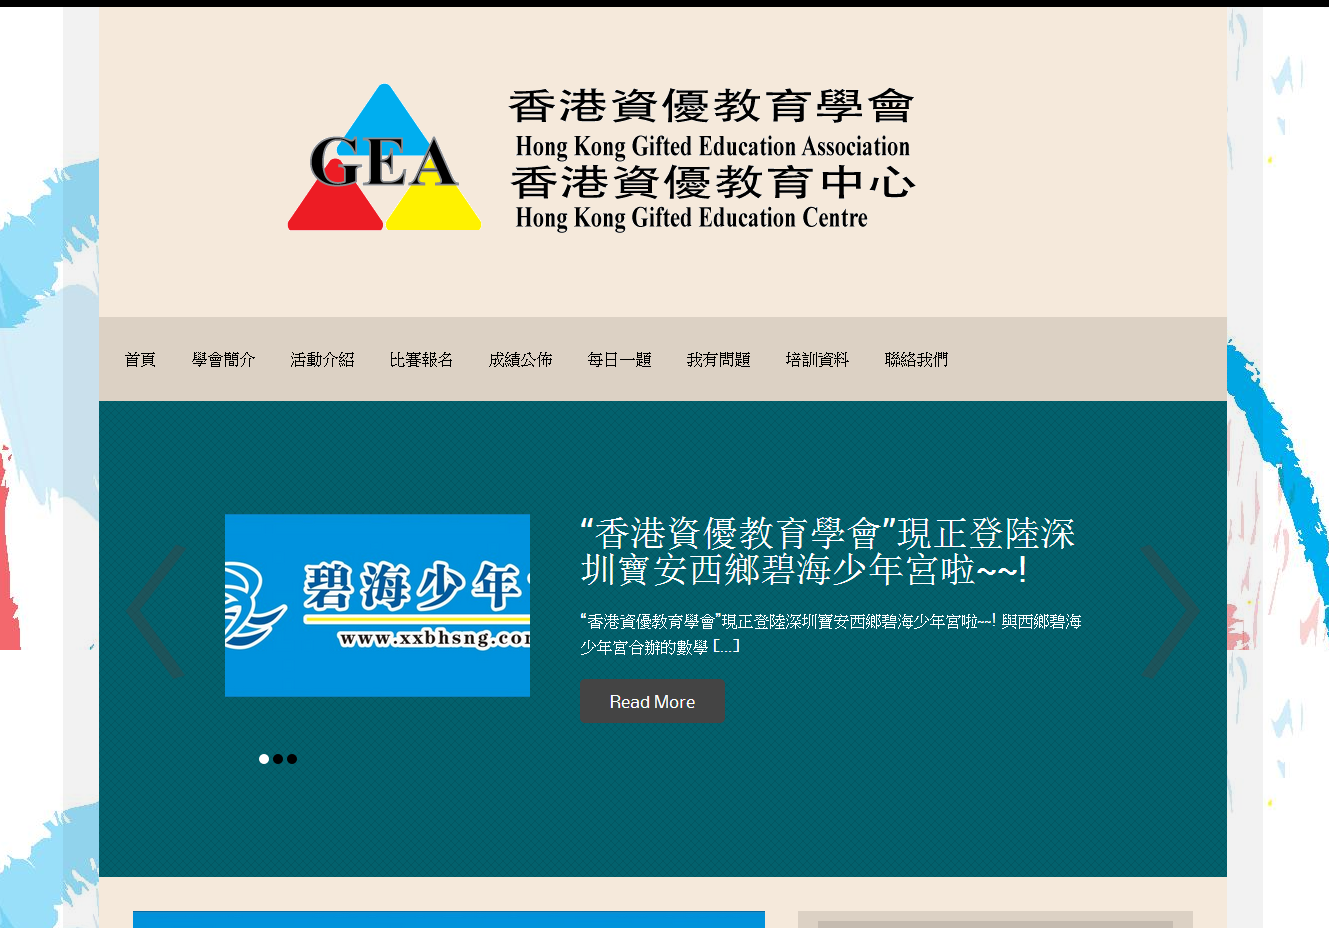 Hong Kong Gifted Education Center 香港資優教育中心